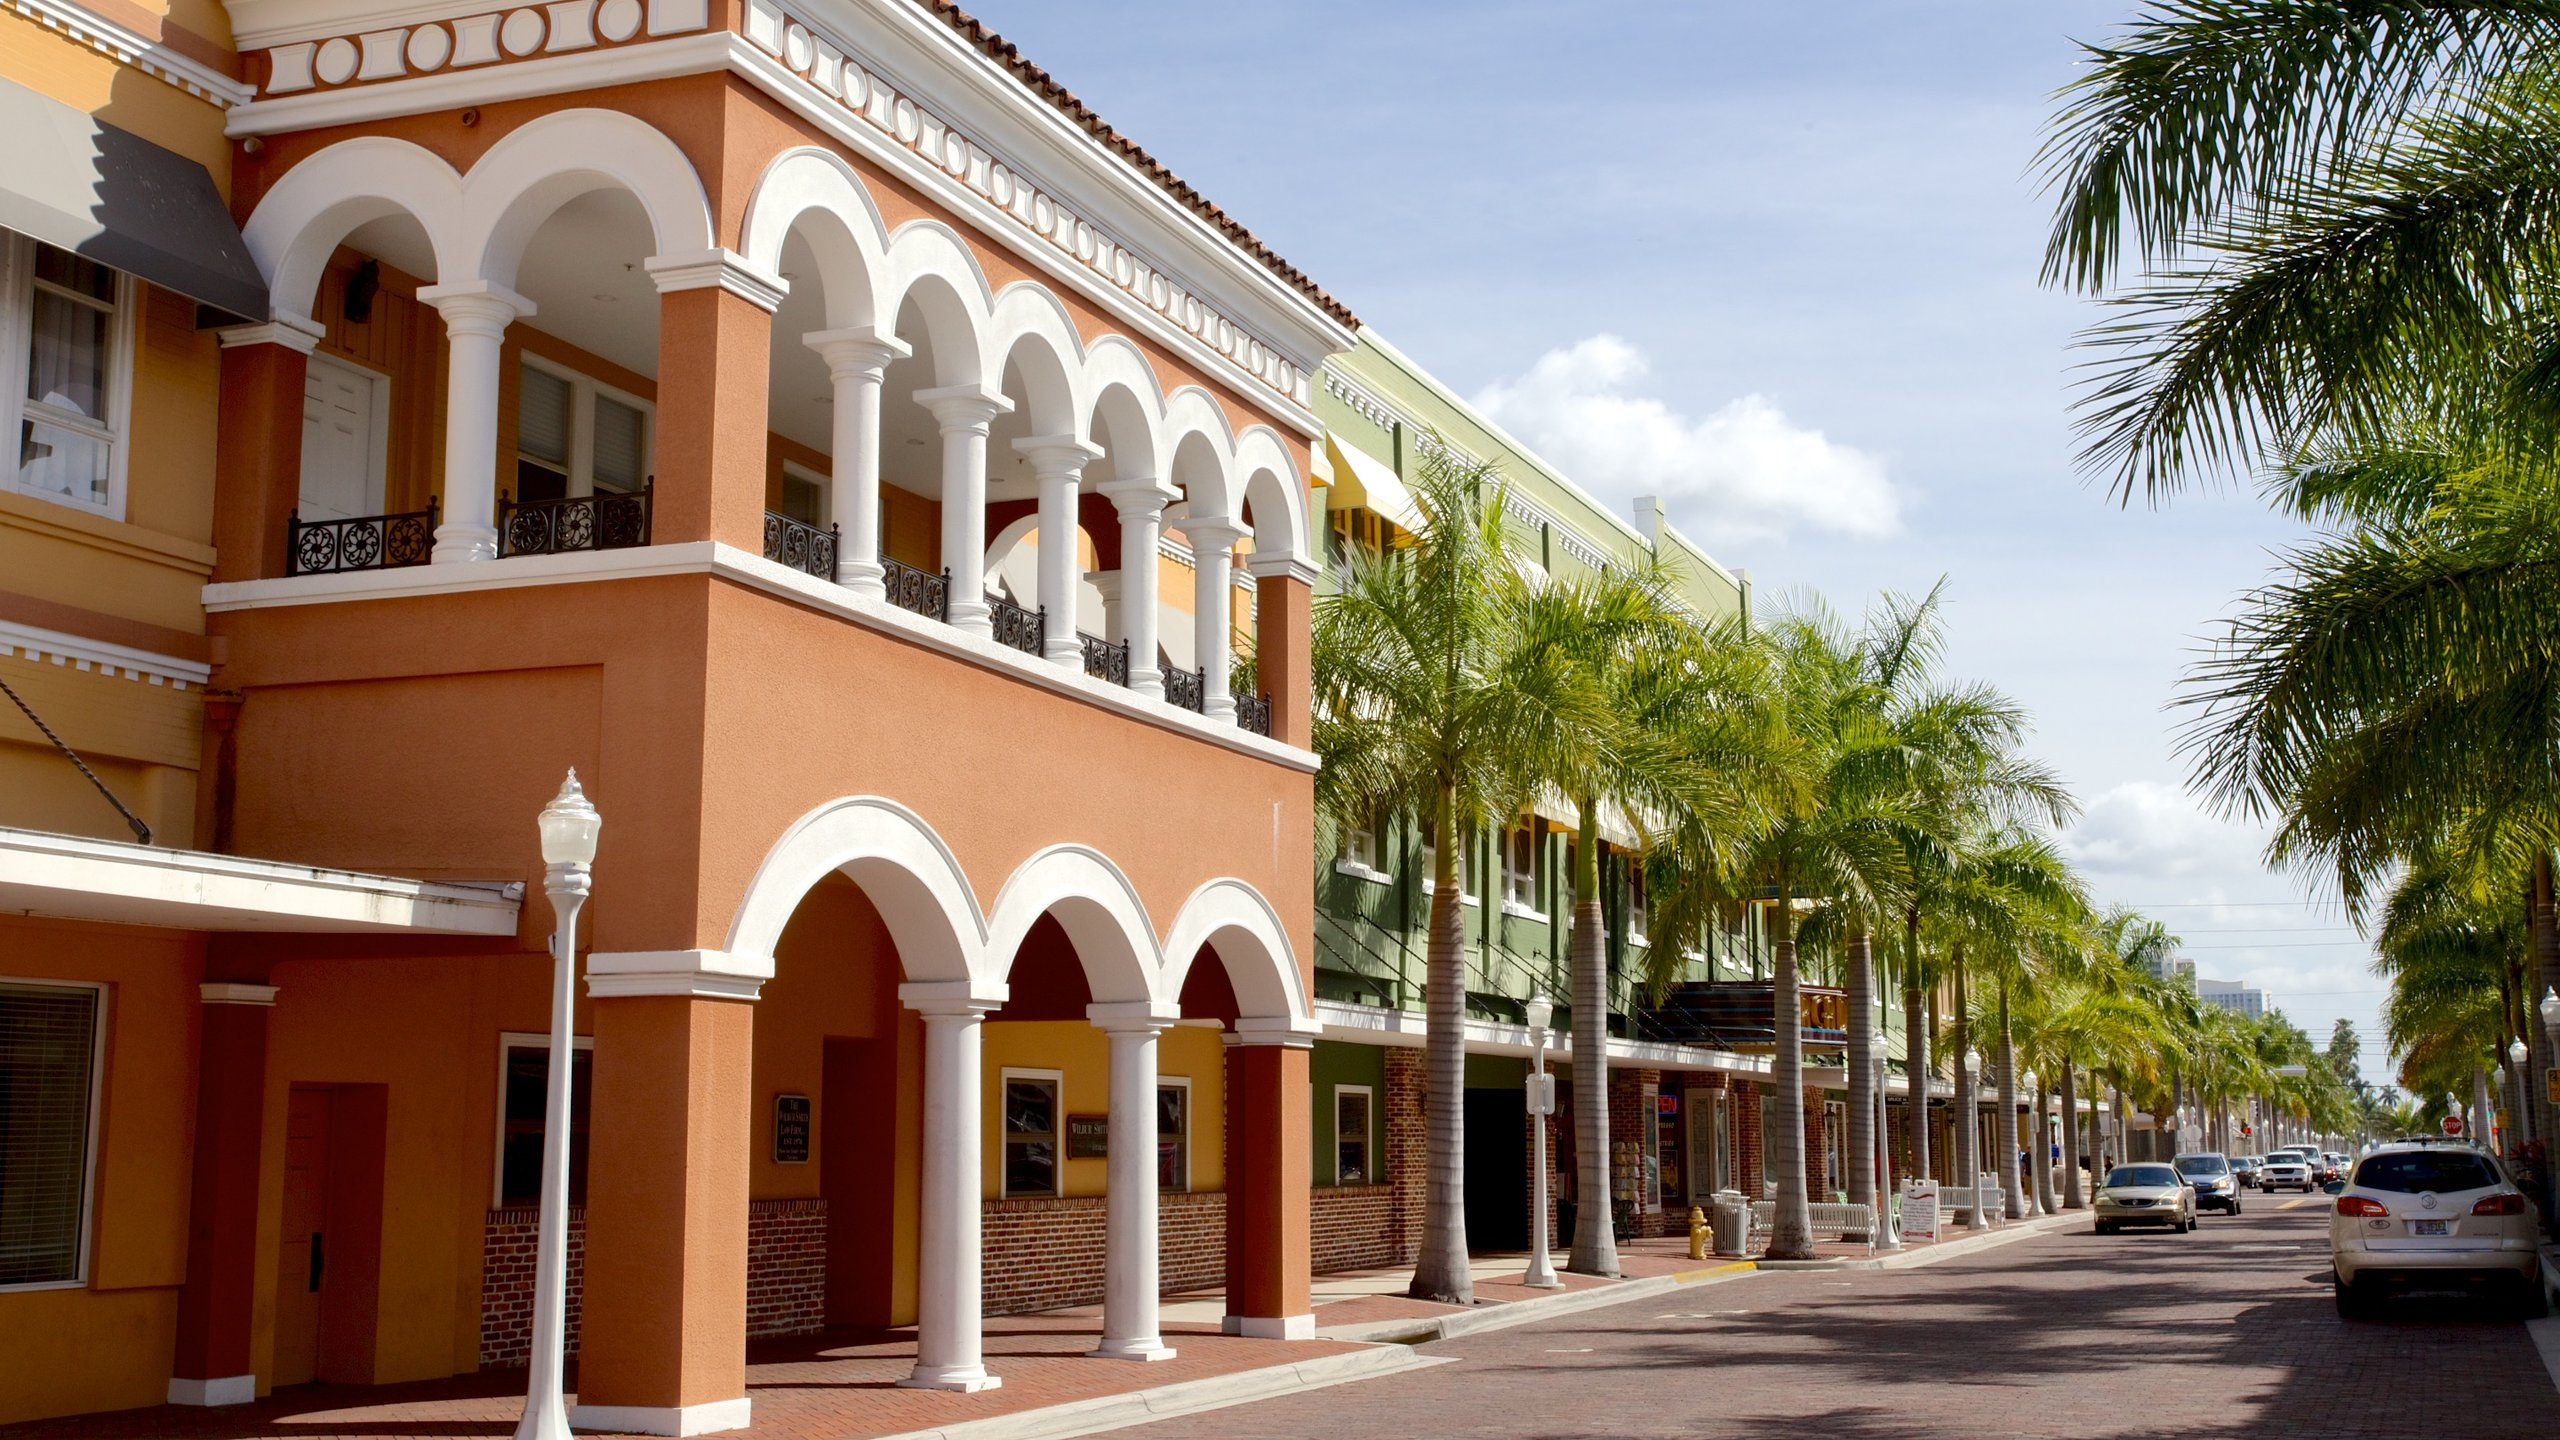 Top 10 Historic Hotels In Fort Myers, FL Full Of Heritage $69